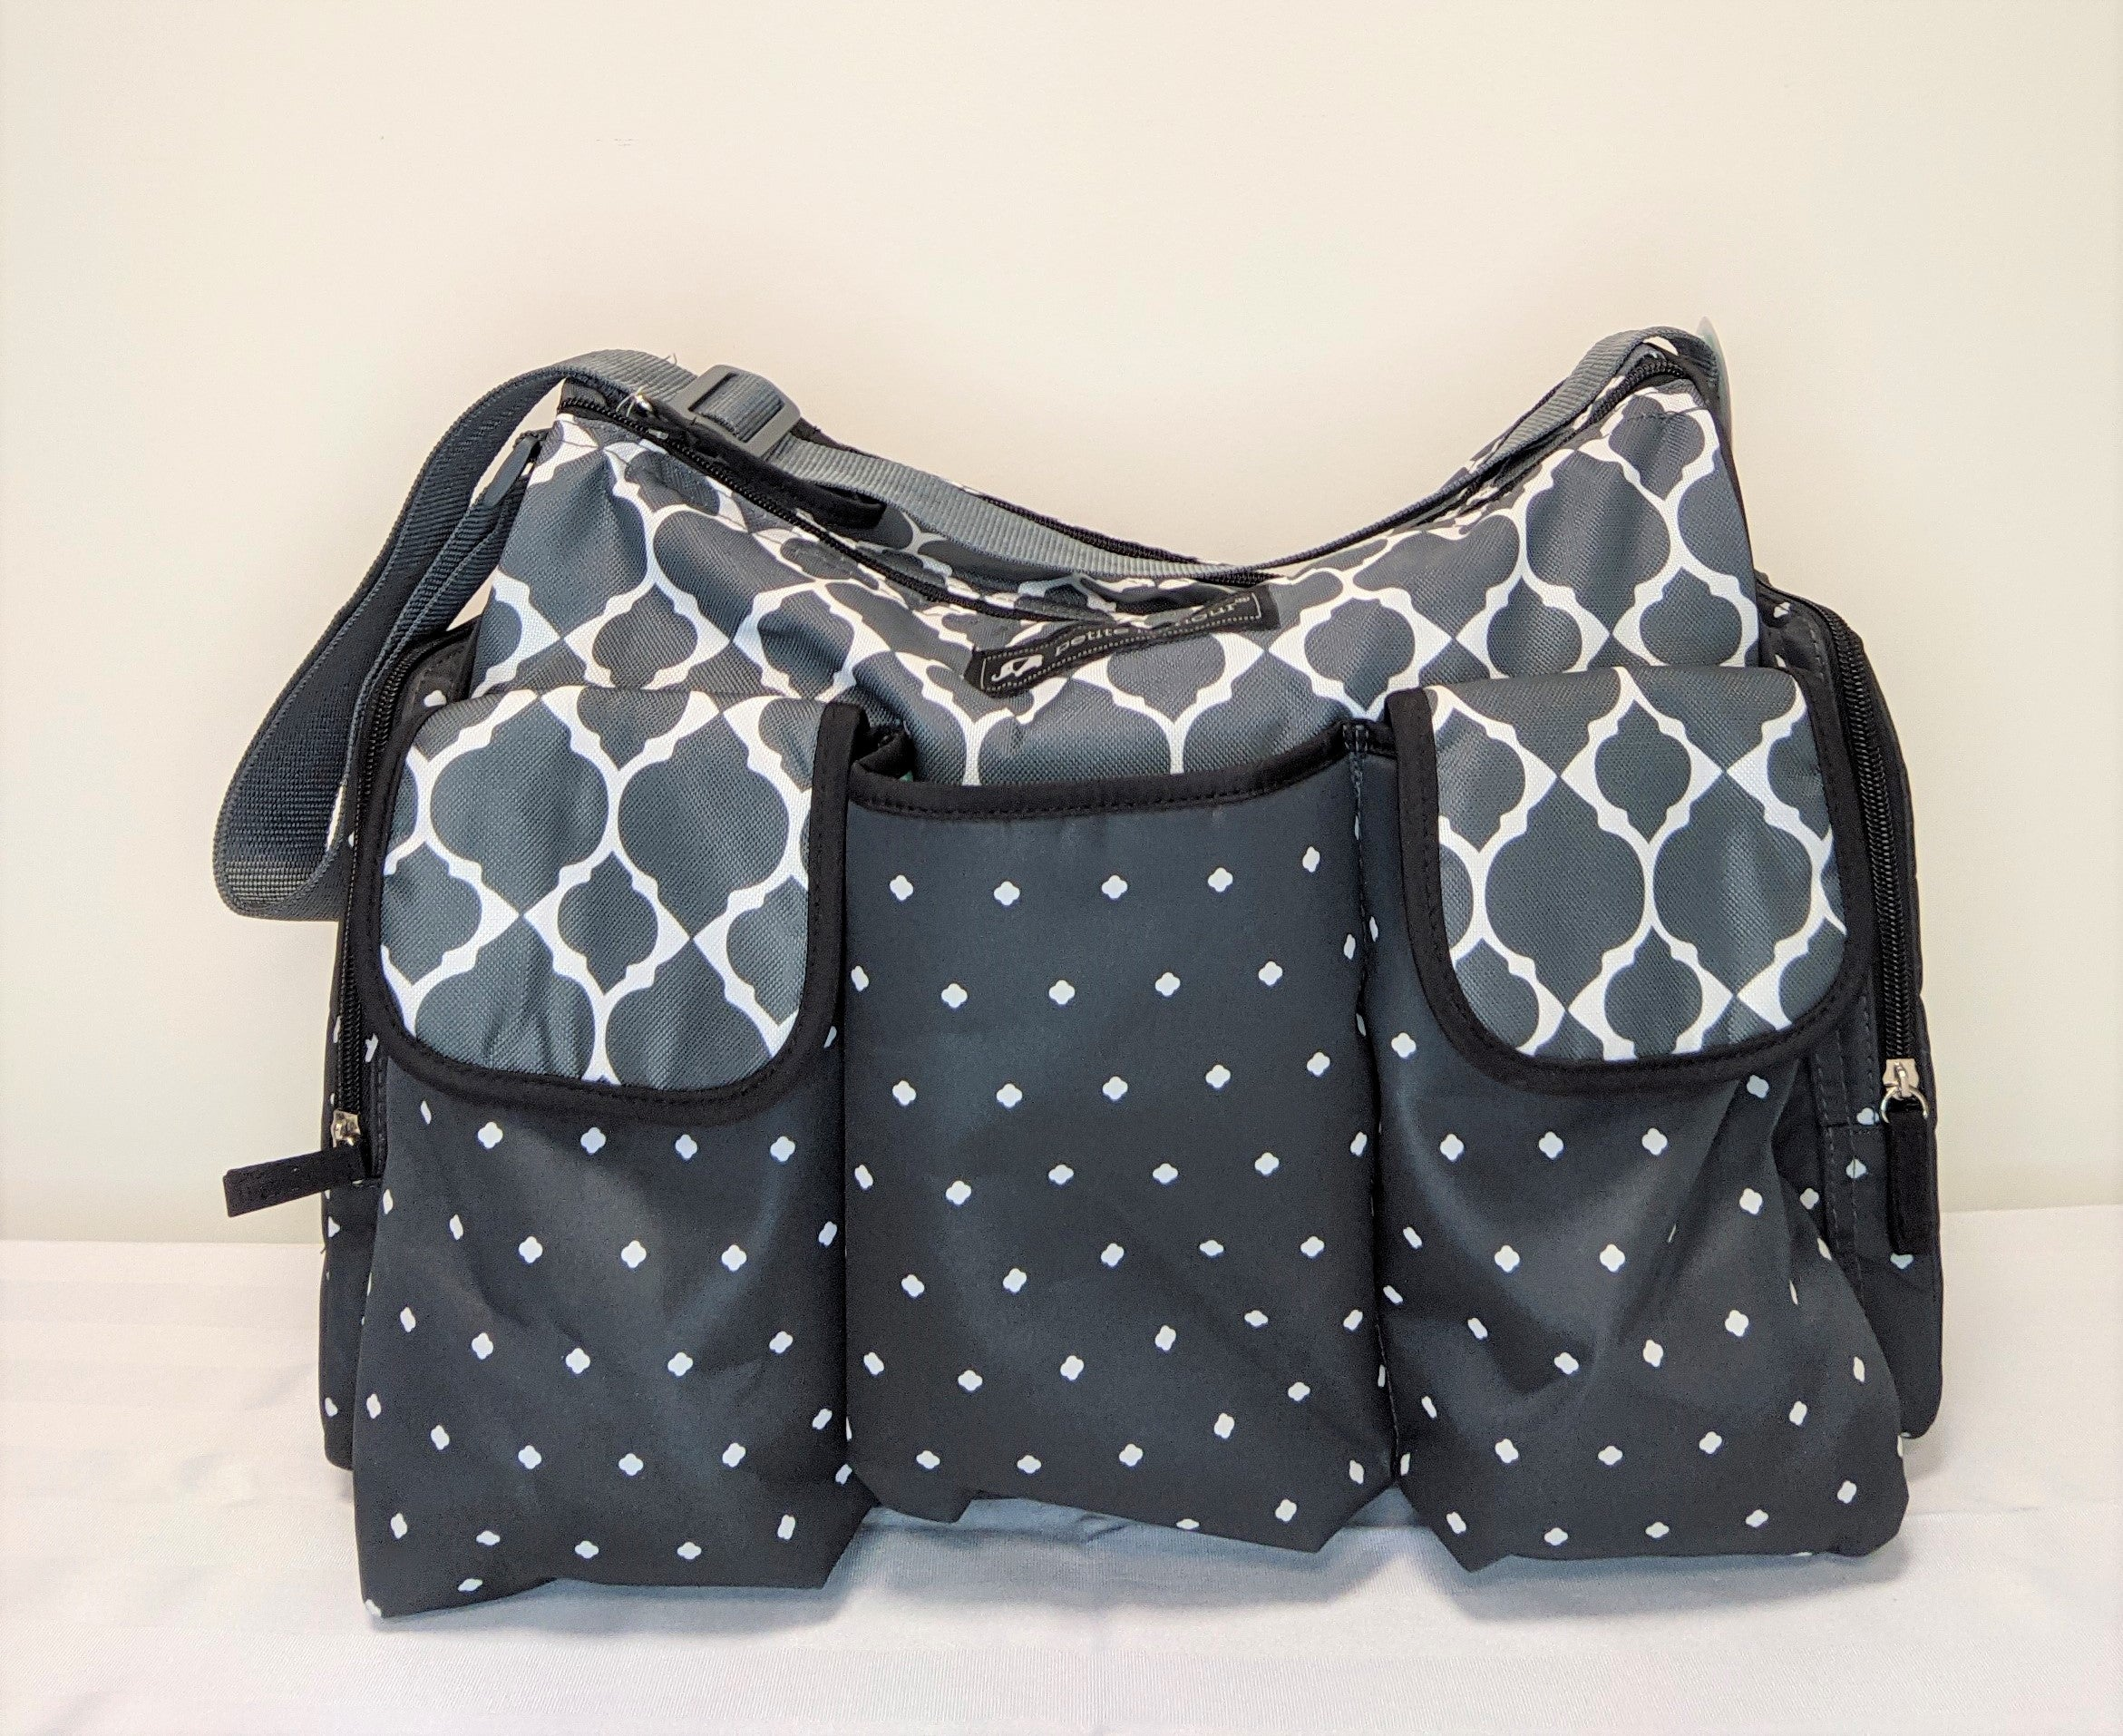 """""""Petite l' amour"""" for Baby- Large Duffle diaper bag"""